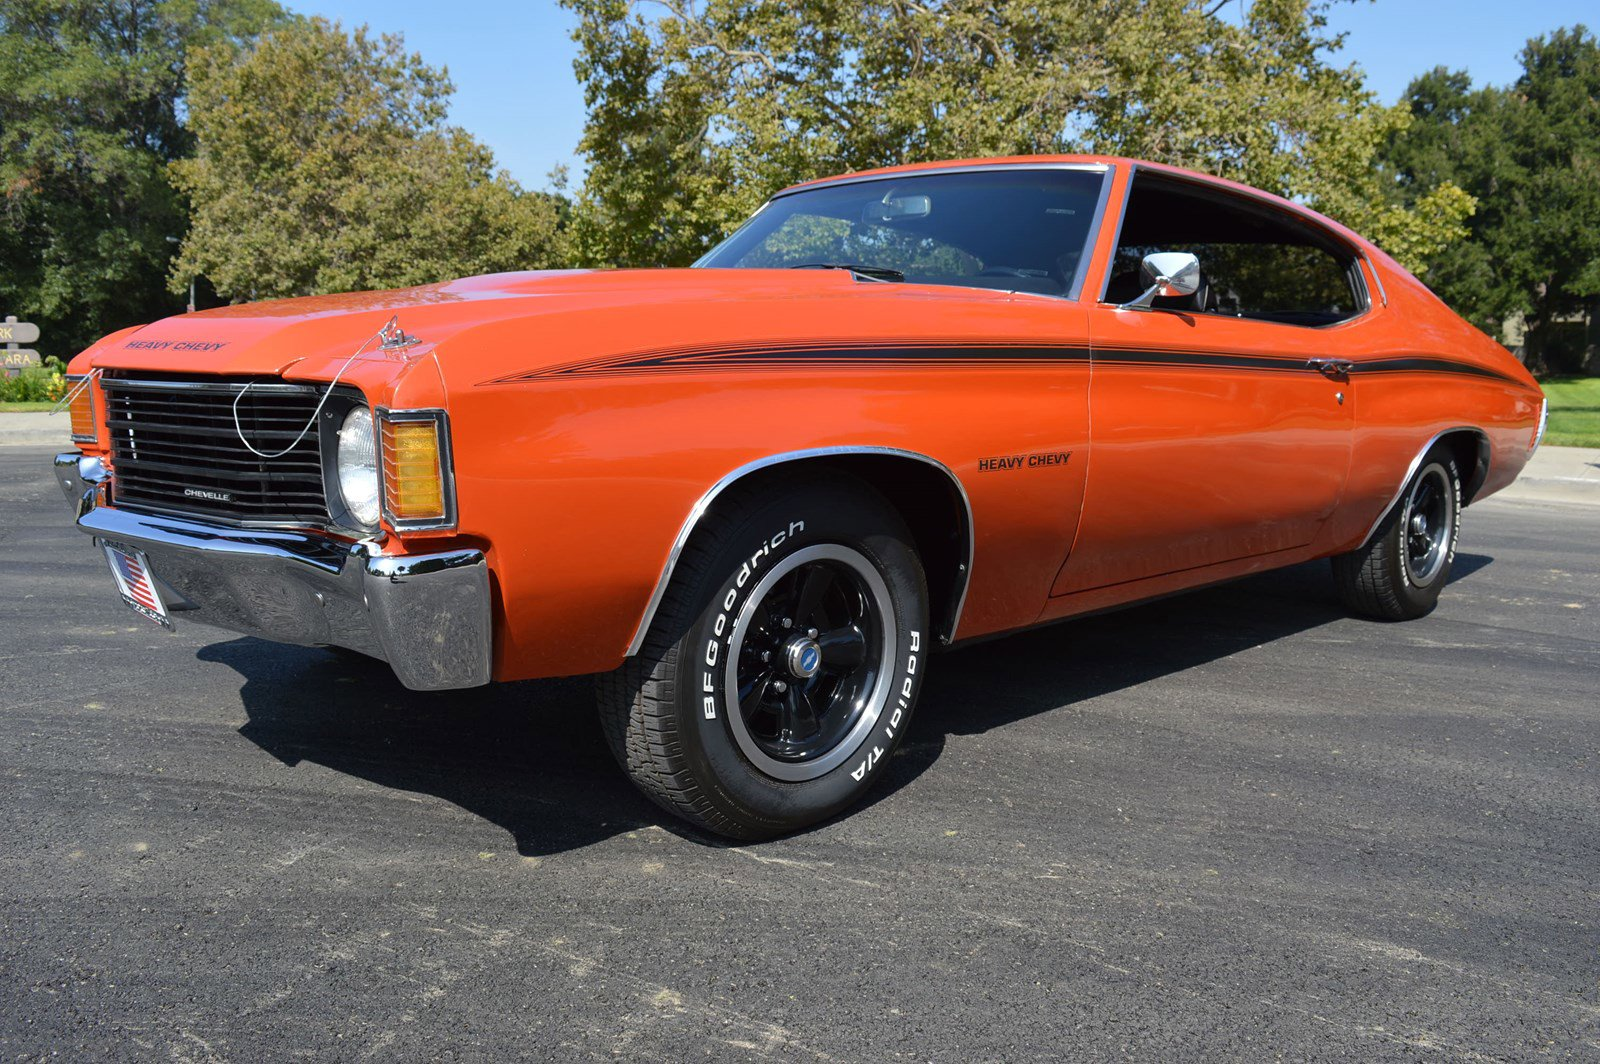 Pre-Owned 1972 Chevrolet Chevelle Gorgeous Restoration Inside and Out